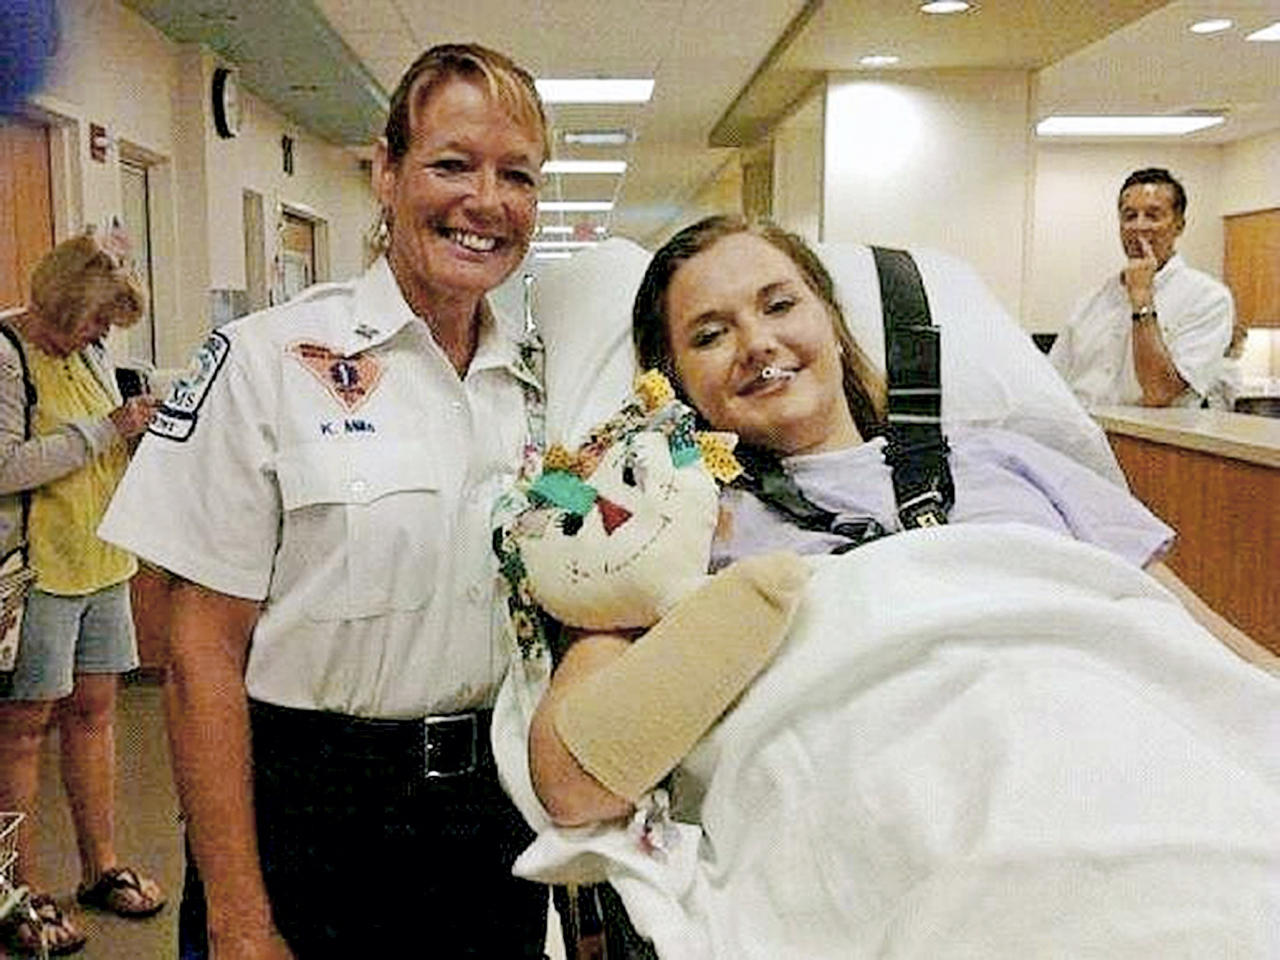 In this image released Monday, July 2, 2012, by Tom Adkins, shows Aimee Copeland, right, with medic Kori Mills as Copeland leaves a hospital in Augusta Ga., headed for an inpatient rehabilitation clinic. Copeland left a Georgia hospital just weeks after a flesh-eating disease took her limbs but not her life. After nearly two months of battling the rare infection, called necrotizing fasciitis, Copeland headed to an inpatient rehabilitation clinic, where she'll learn to use a wheelchair after having her left leg, right foot and both hands amputated. (AP Photo/Tom Adkins)